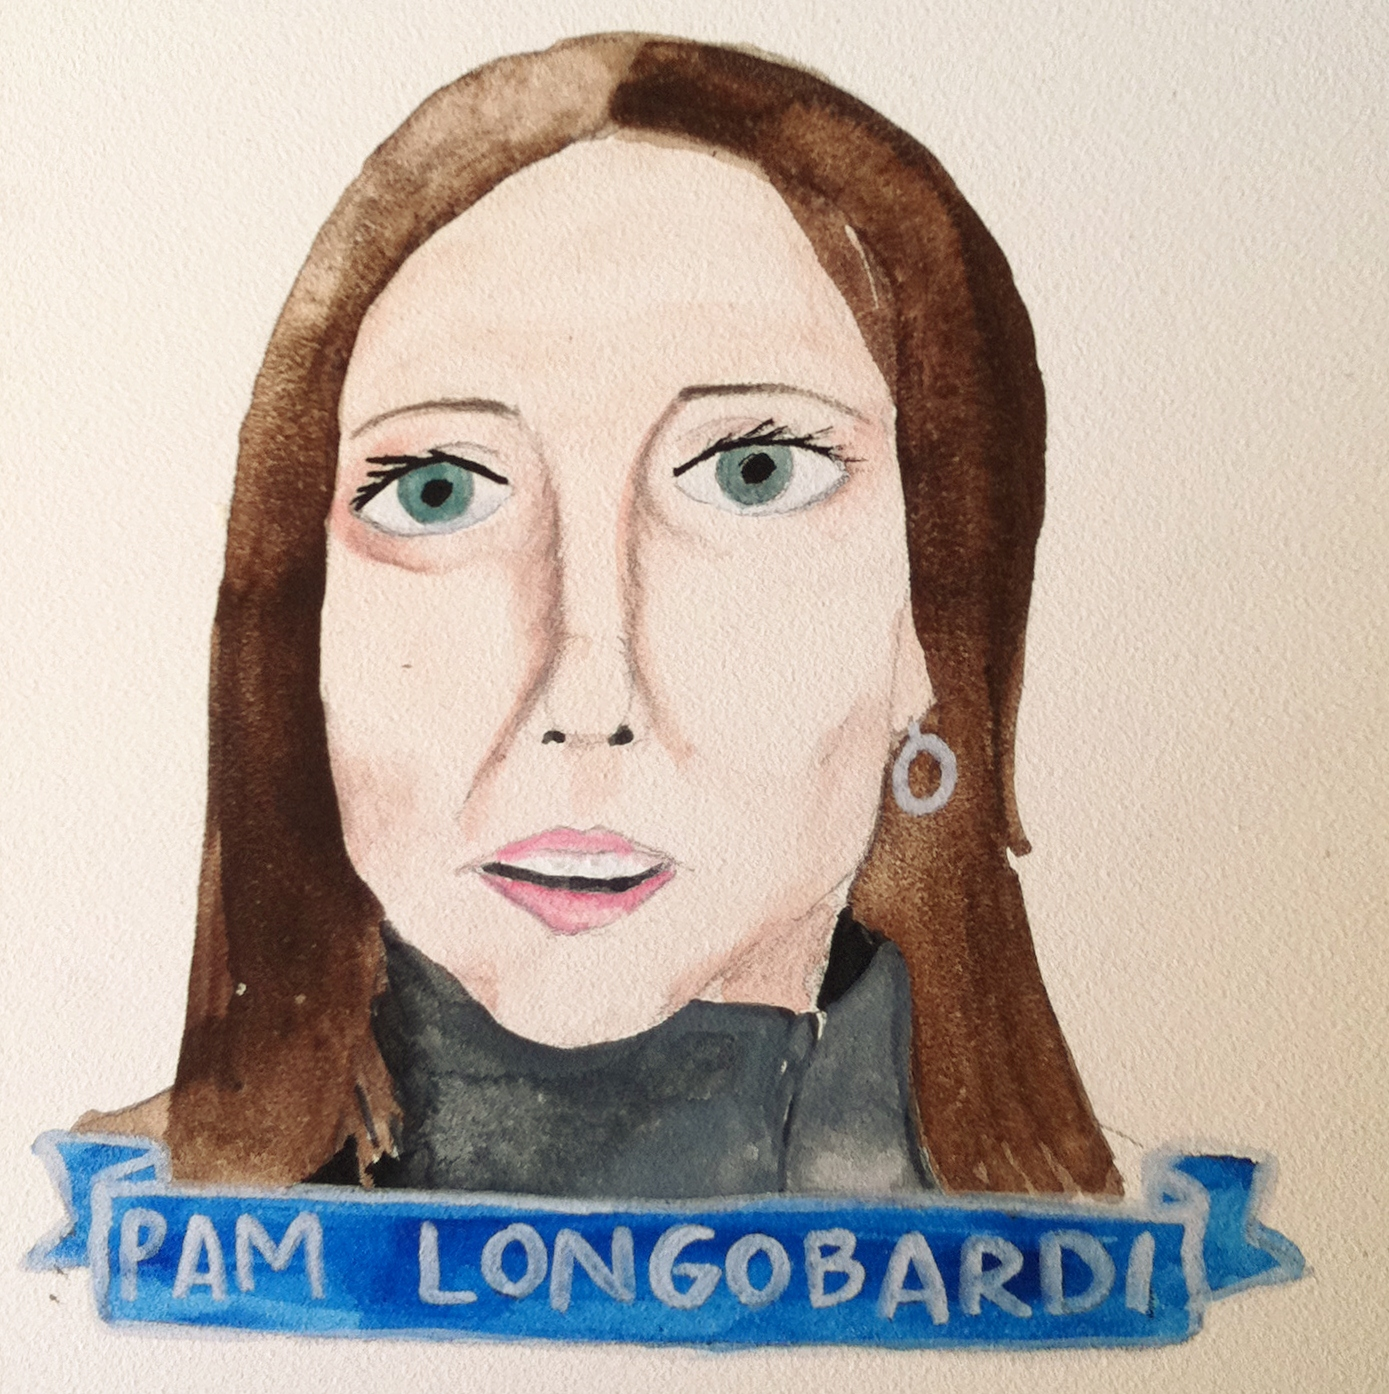 Talent Loves Company at Barbara Archer Gallery: 365 portraits by Lydia Walls - Pam Longobardi